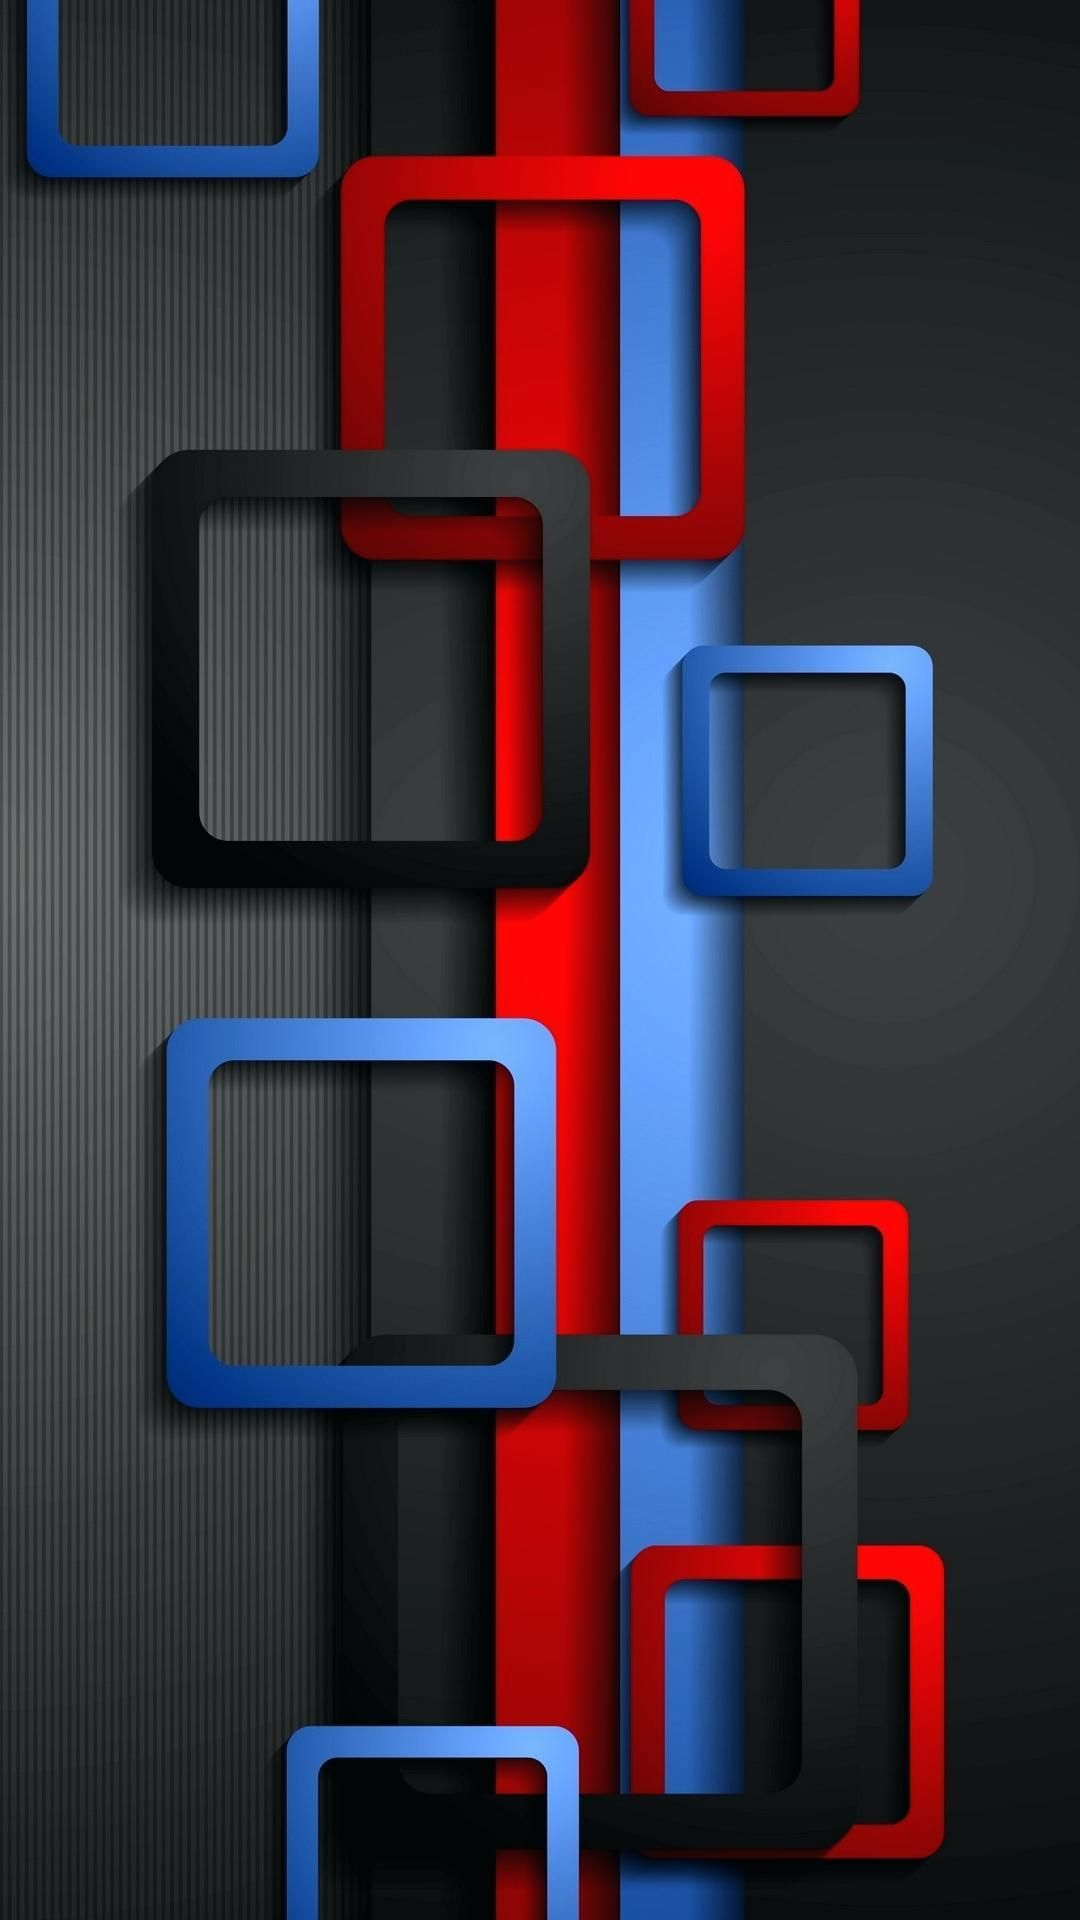 Wallpaper Full Hd For Mobile With Red Blue And Black Box Hd Wallpapers Wallpapers Download High Resolution Wallpapers Black Wallpaper For Mobile Desktop Wallpaper Design 3d Wallpaper For Mobile